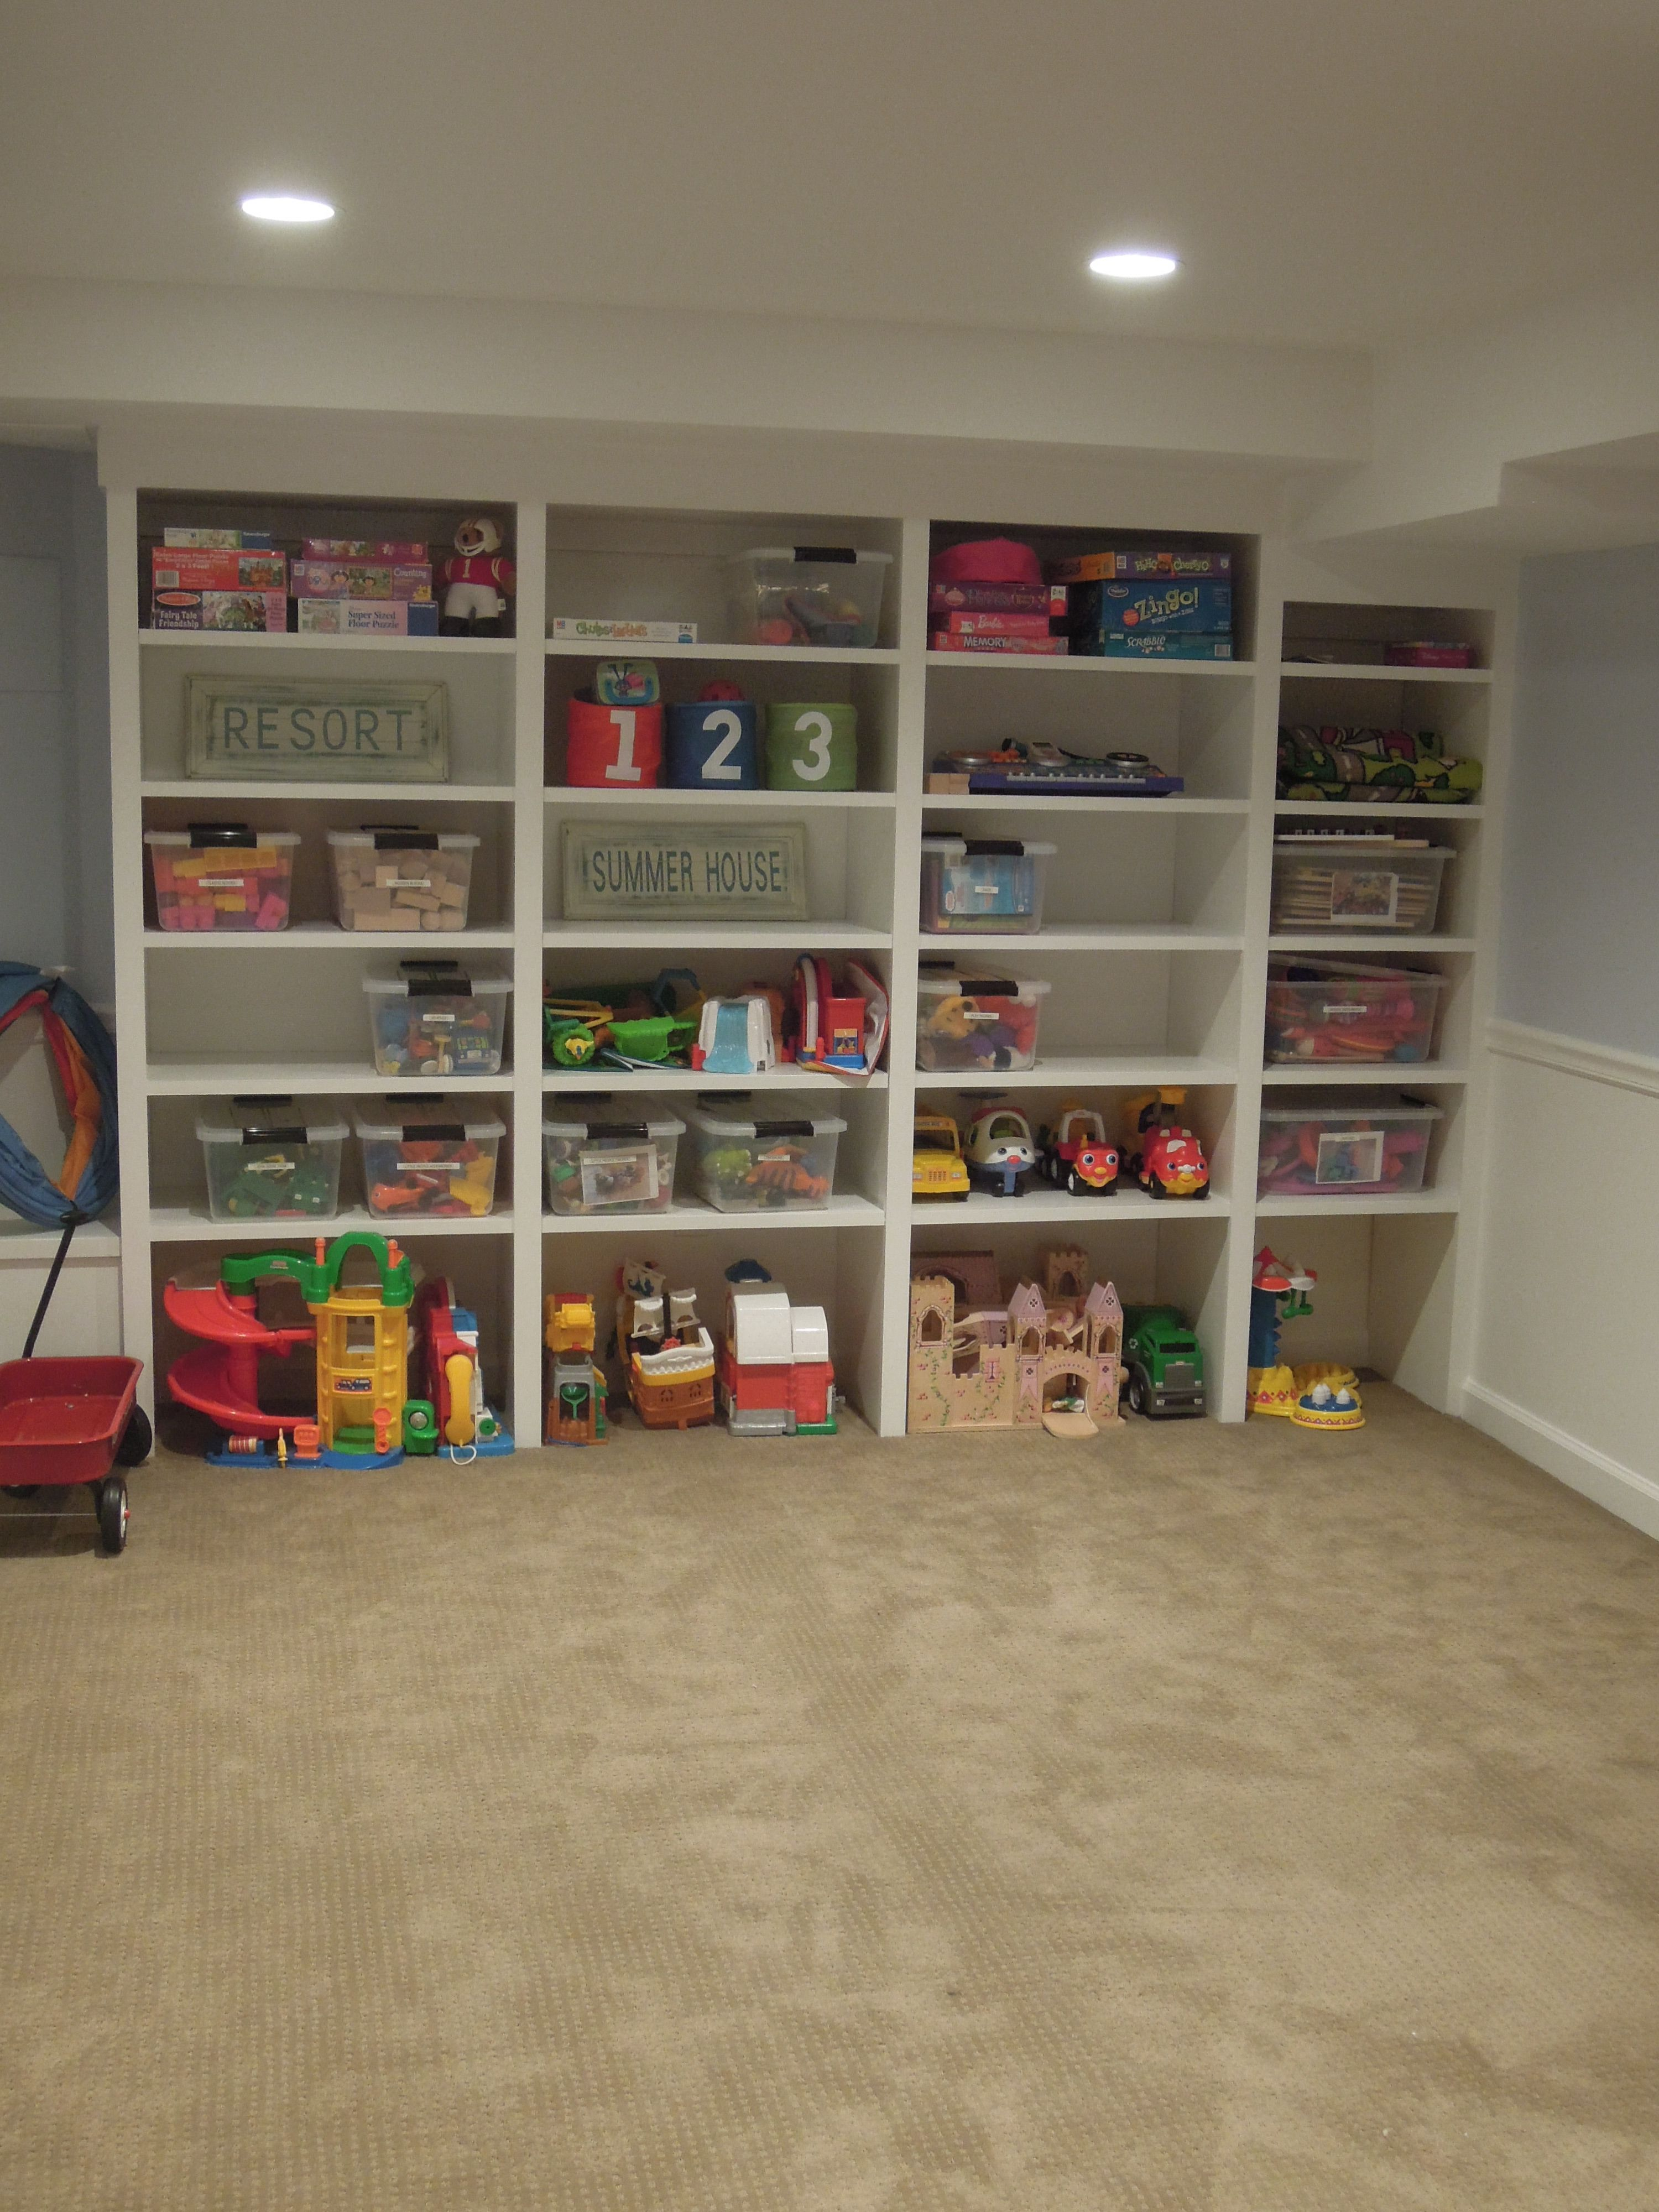 Toy Storage Ideas Living Room For Small Spaces Learn How To Organize Toys In A Small Space Living Room Toy Storage Furniture Toy Room Storage Playroom Storage